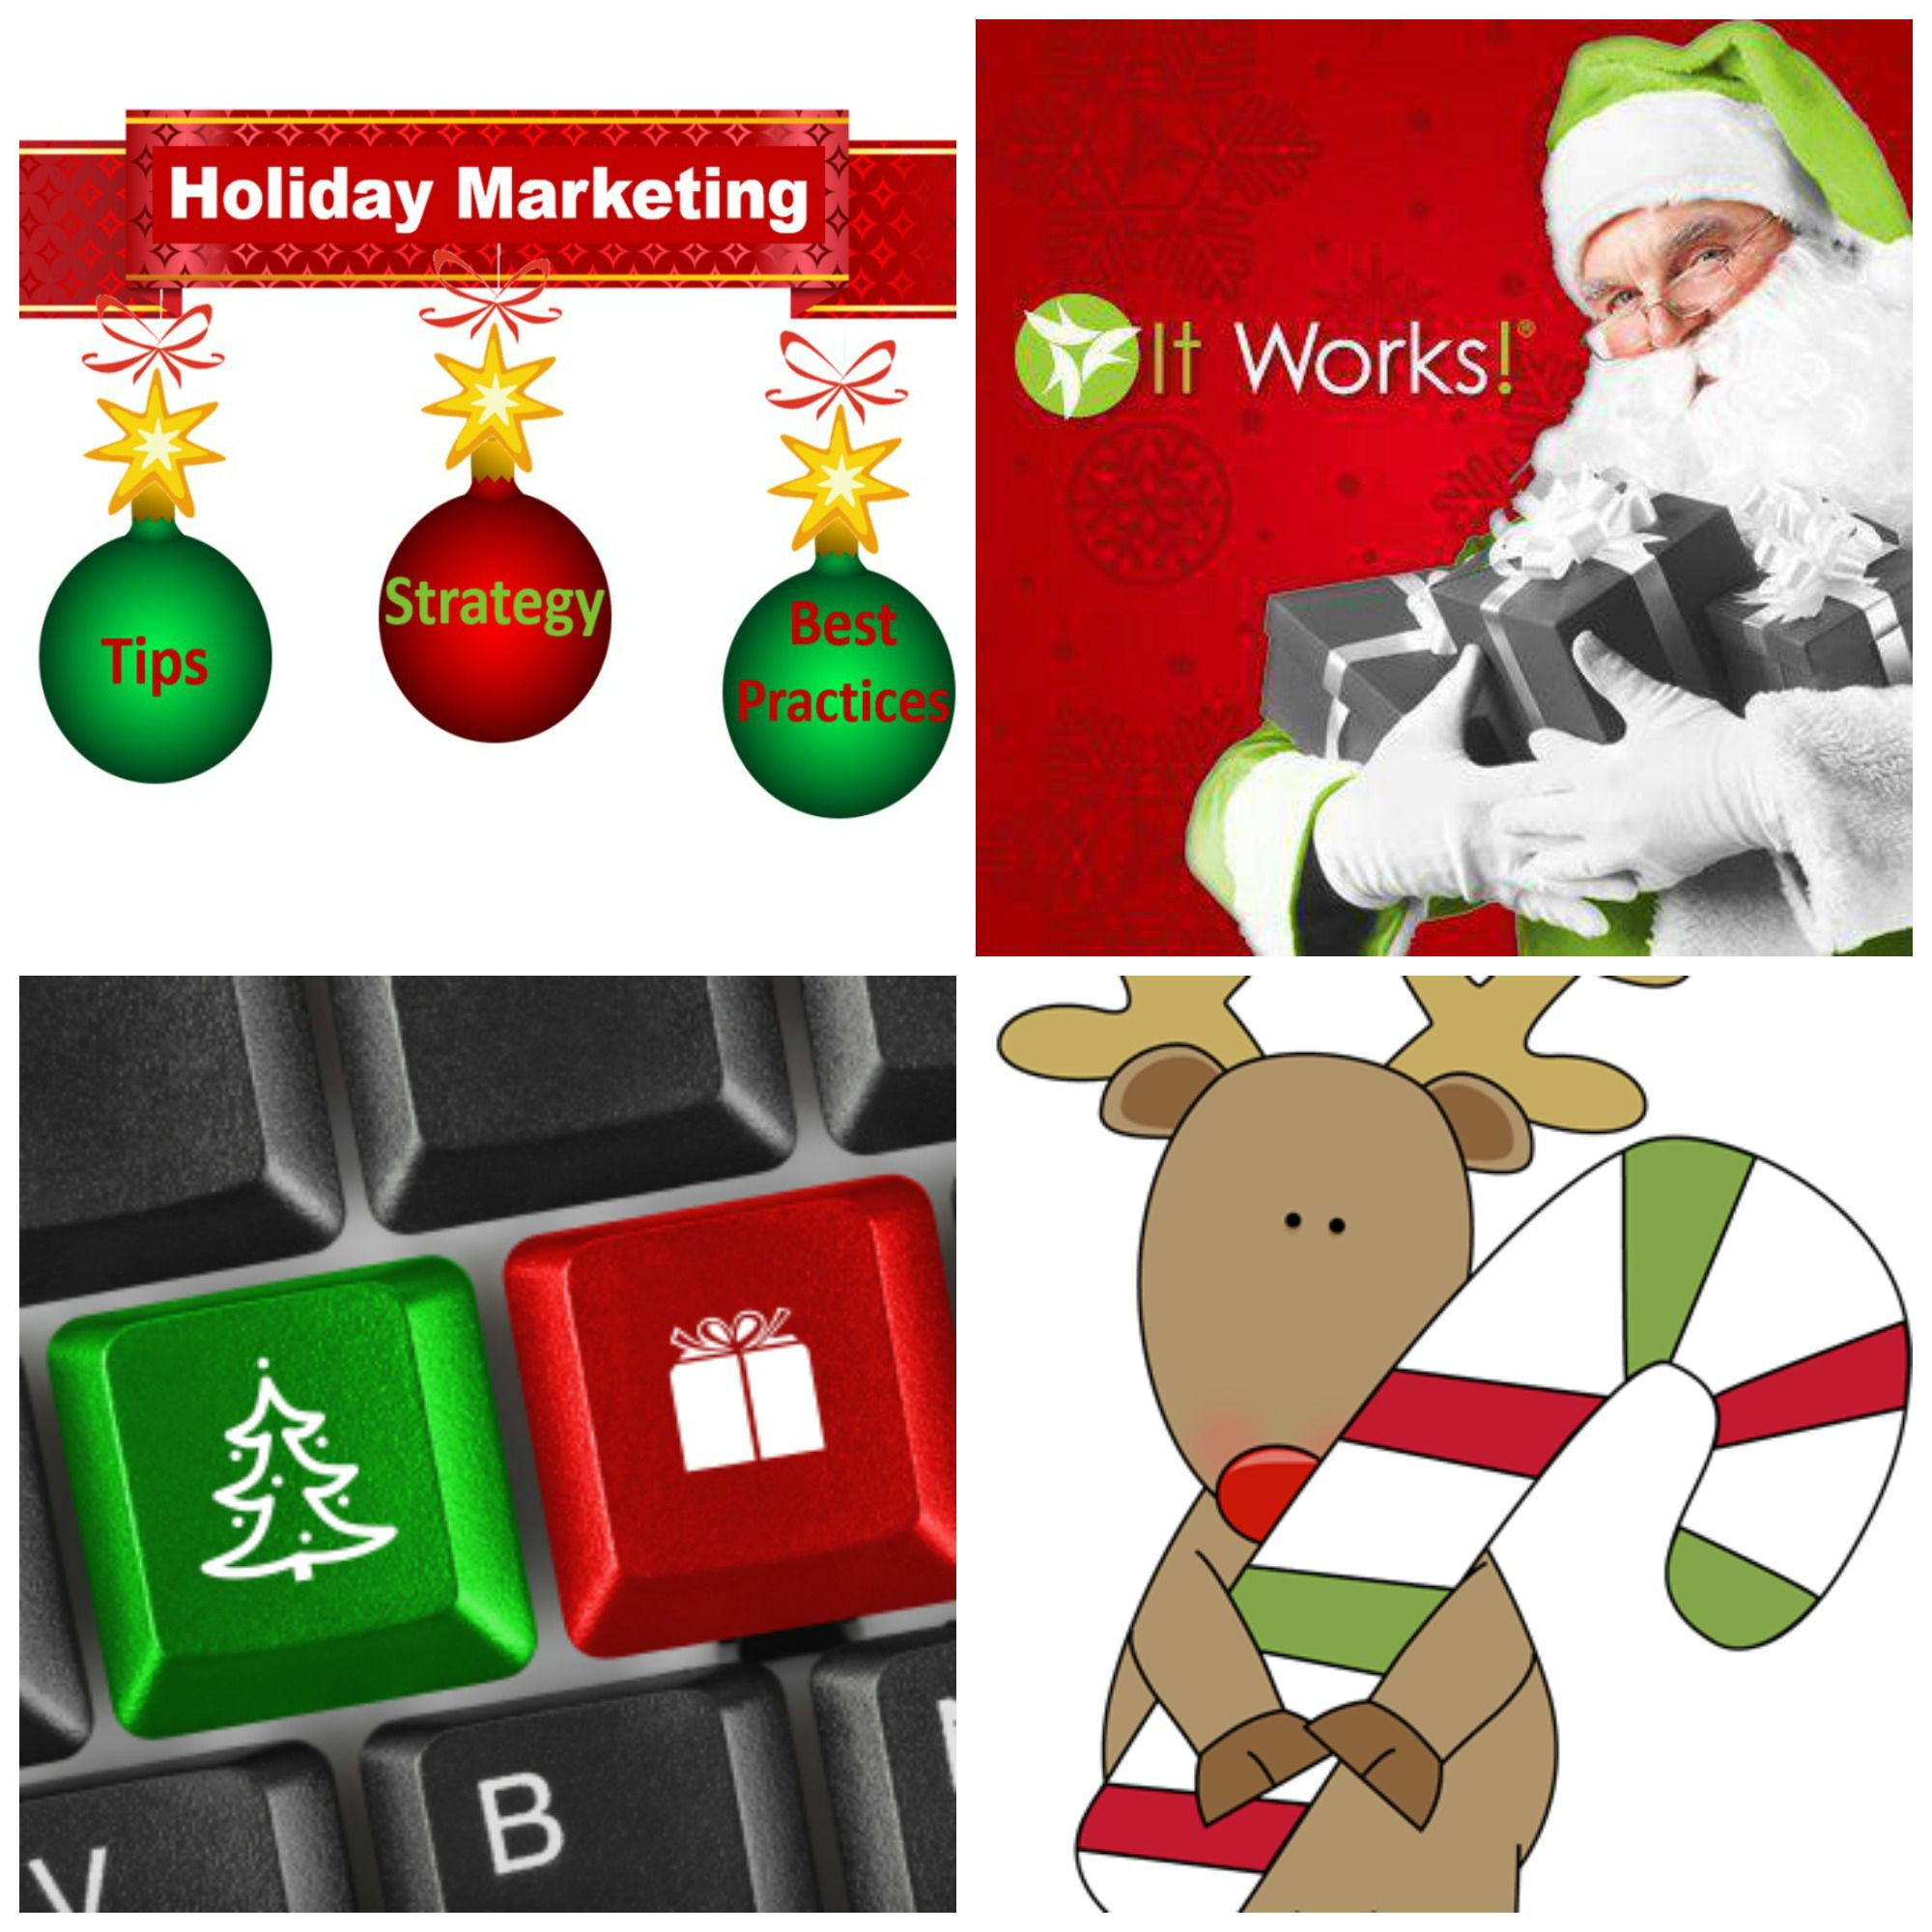 It Works Distributor Holiday Marketing Tips